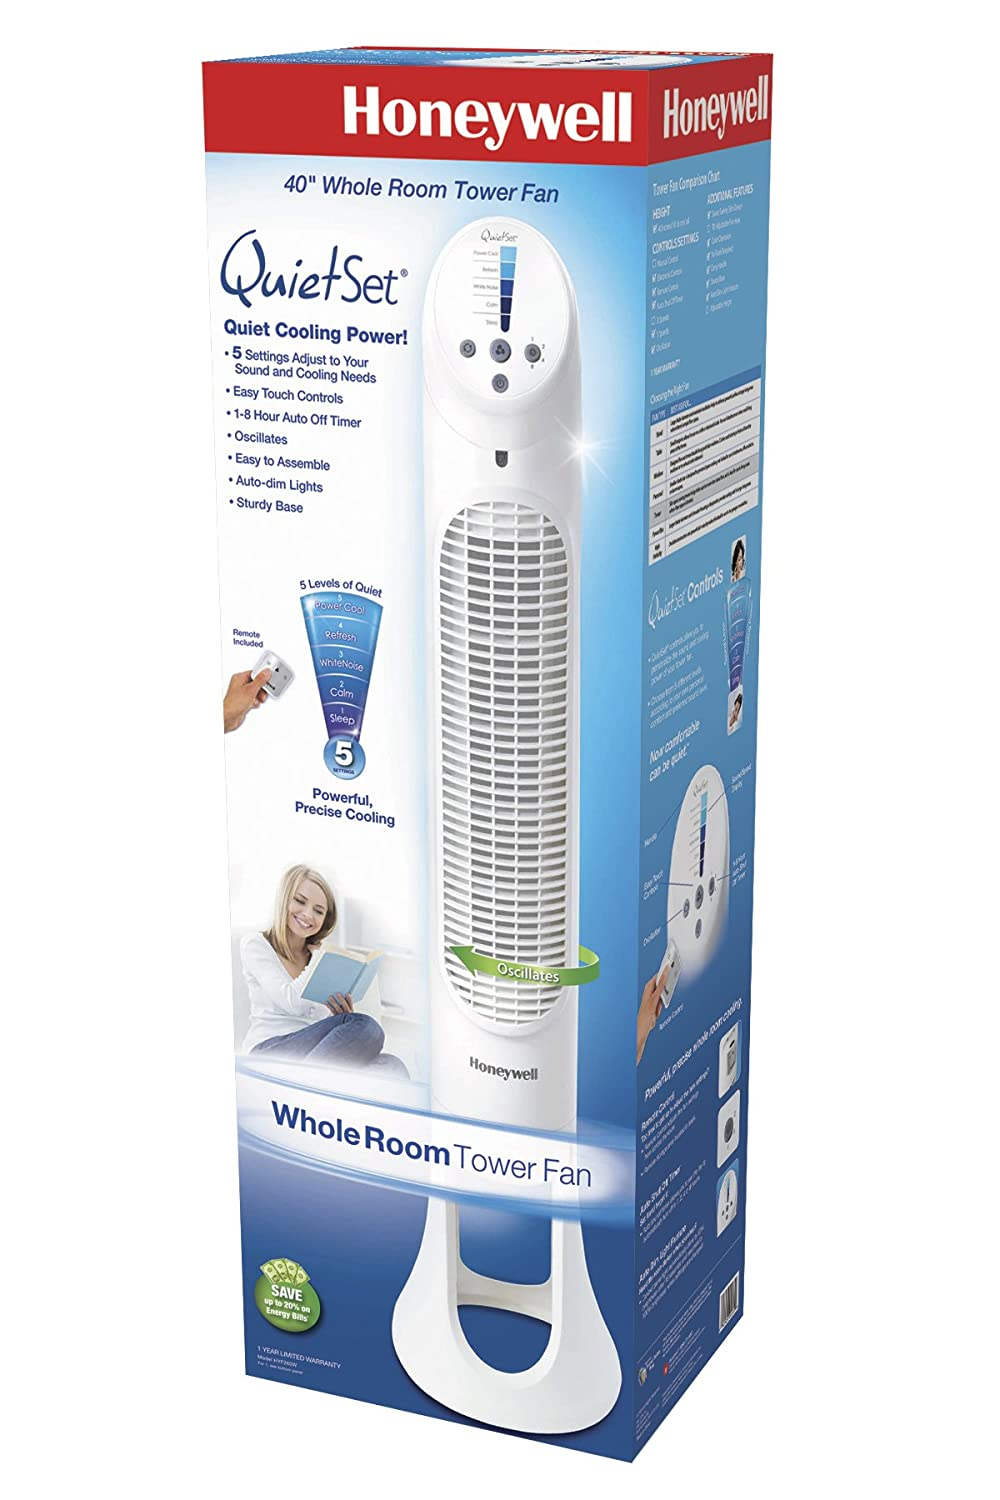 Amazon.com: Honeywell Quiet Set Whole Room Tower Fan: Home & Kitchen